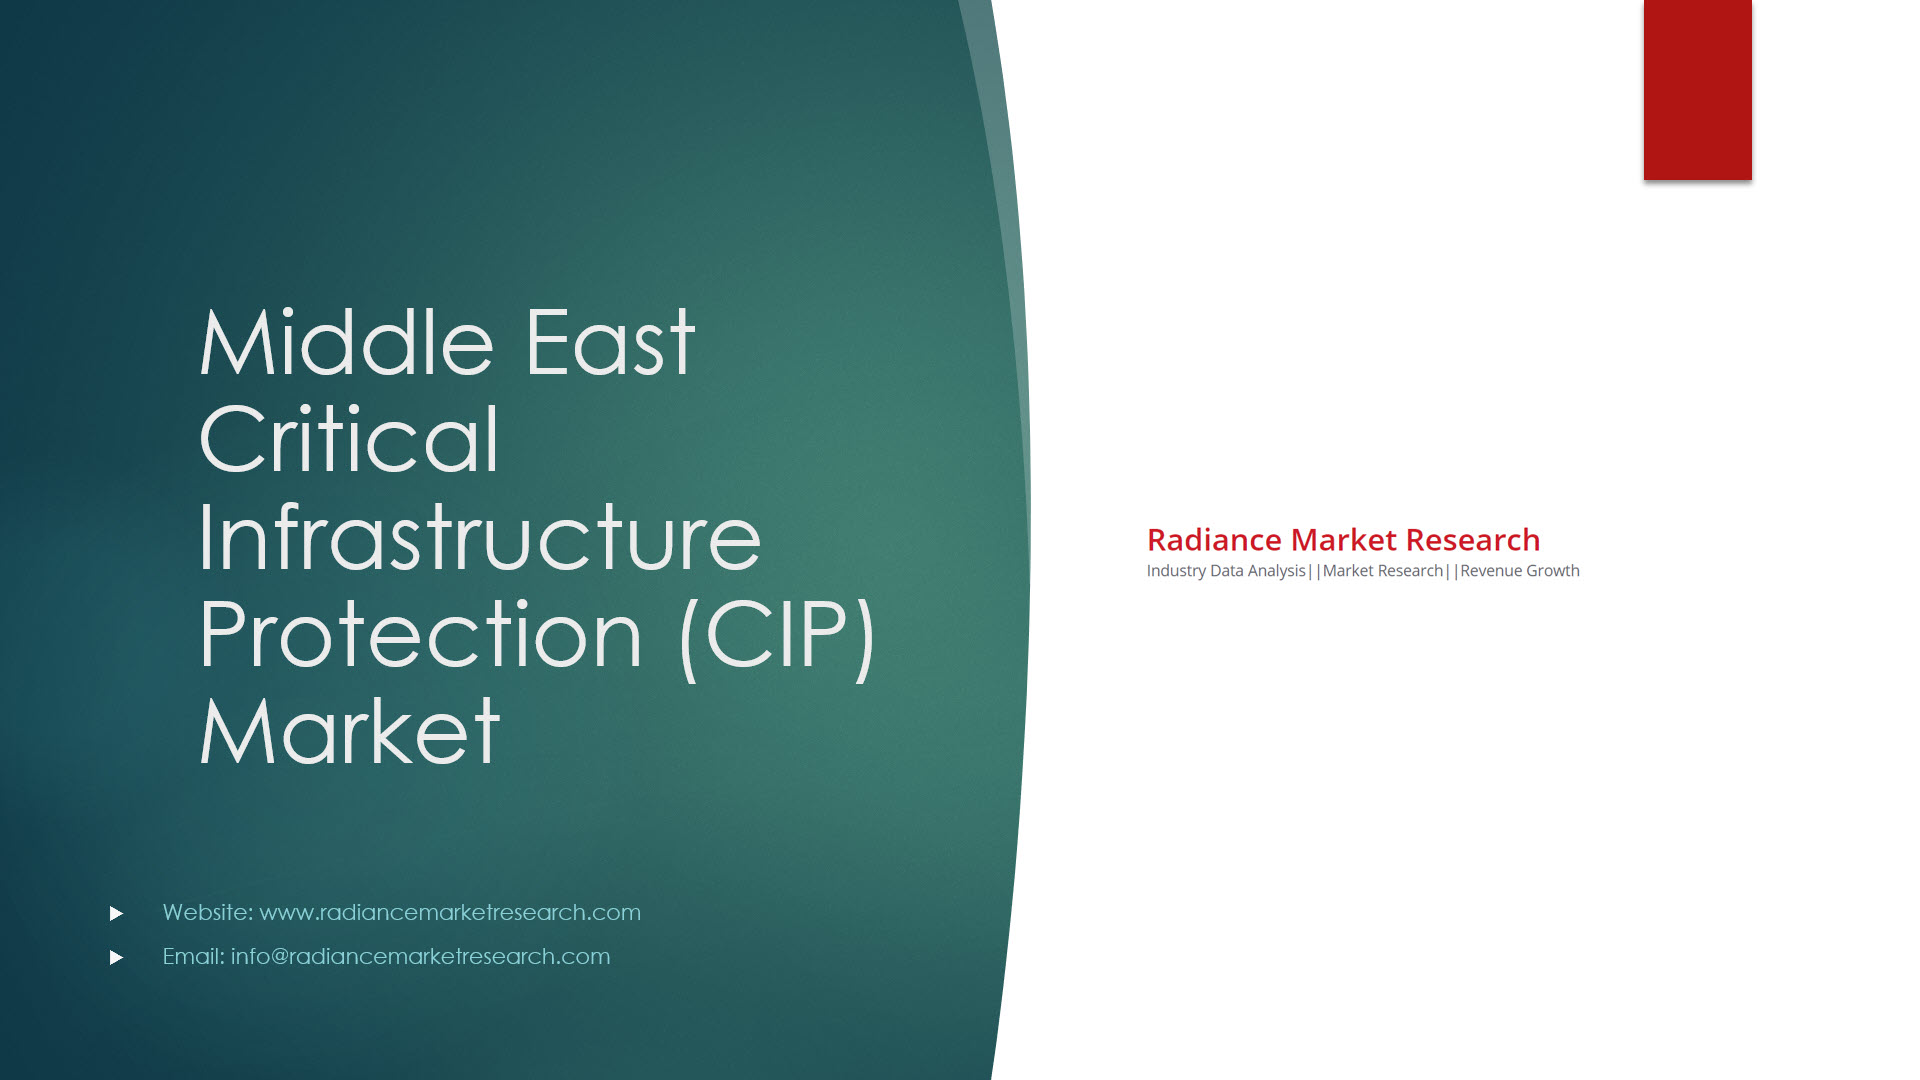 Middle East Critical Infrastructure Protection (CIP) Market